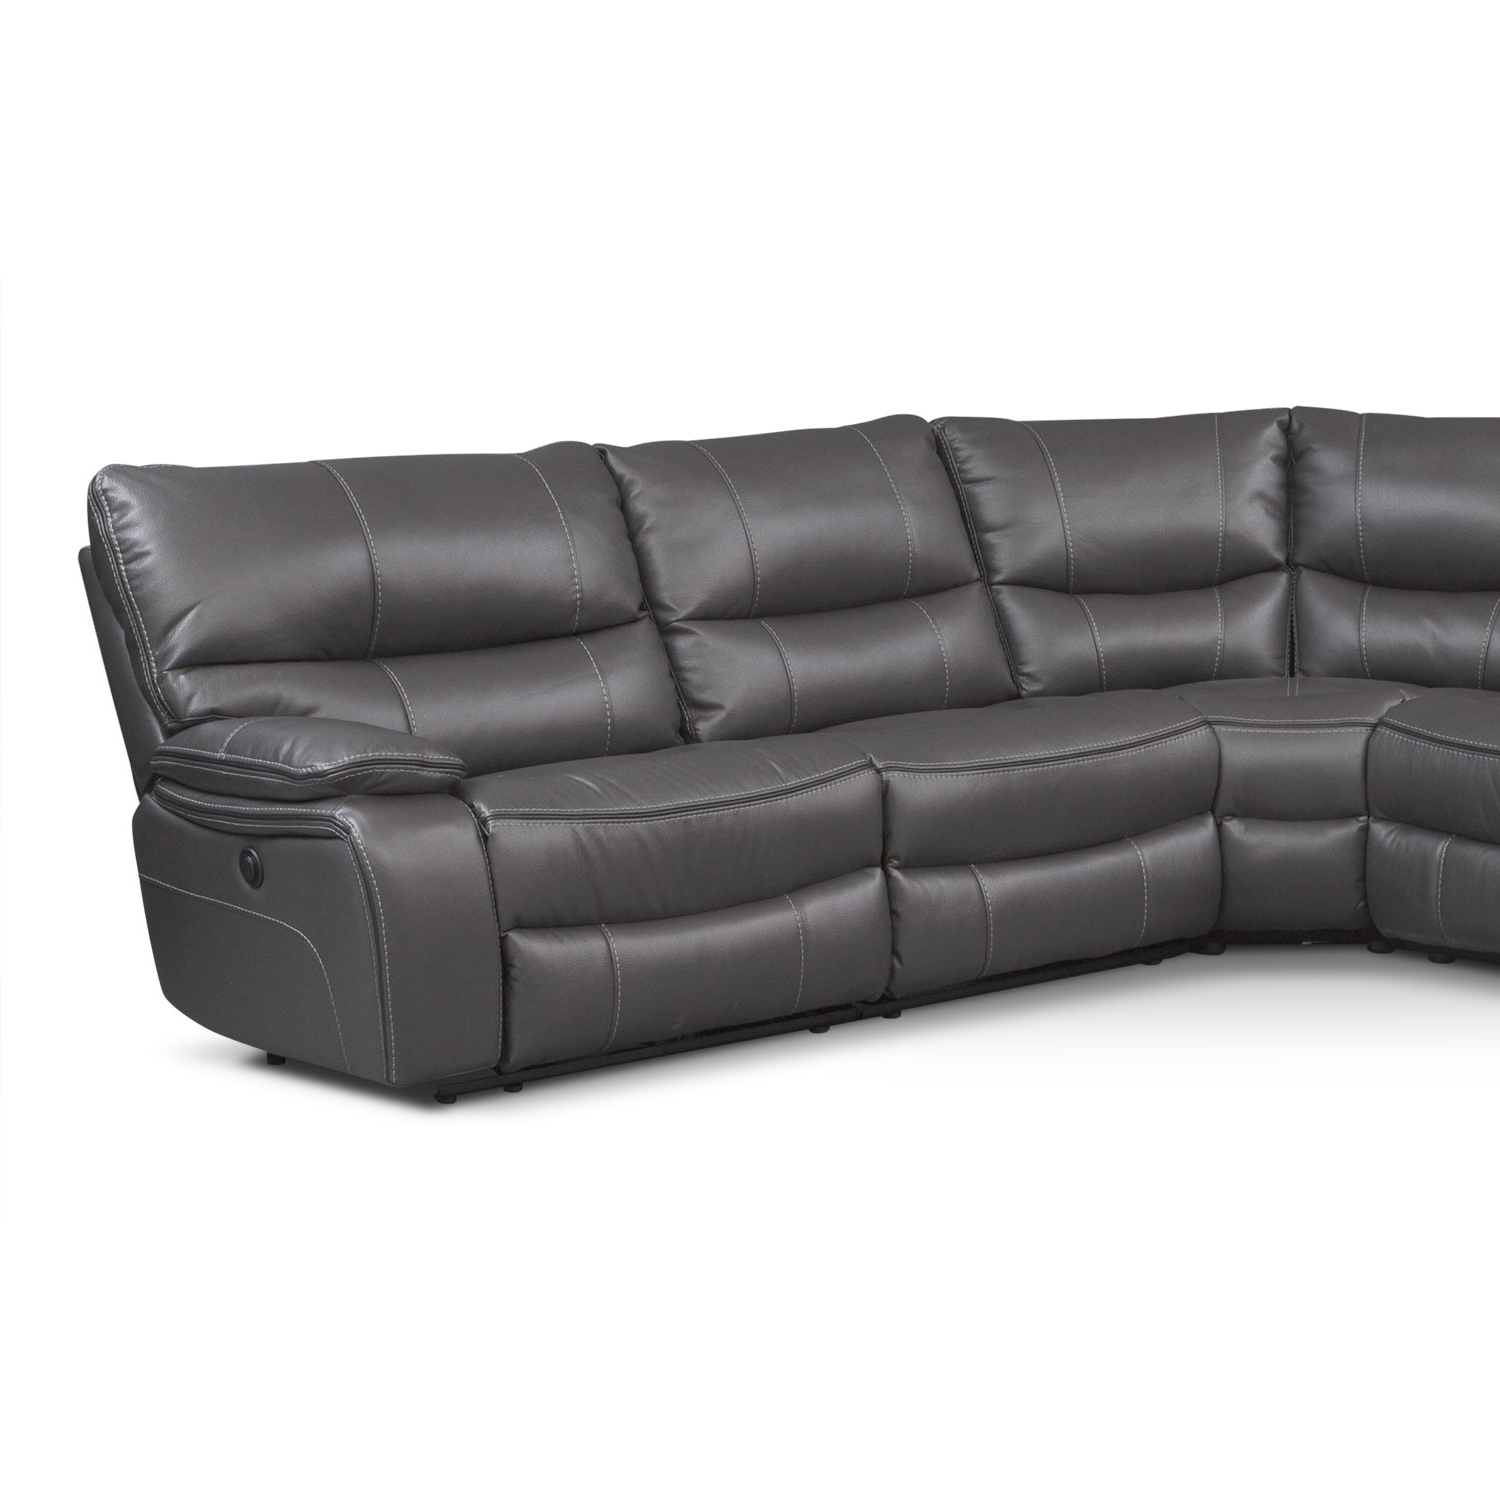 Orlando 6 Piece Power Reclining Sectional With 1 Stationary Chair For Best And Newest Kristen Silver Grey 6 Piece Power Reclining Sectionals (Gallery 4 of 20)